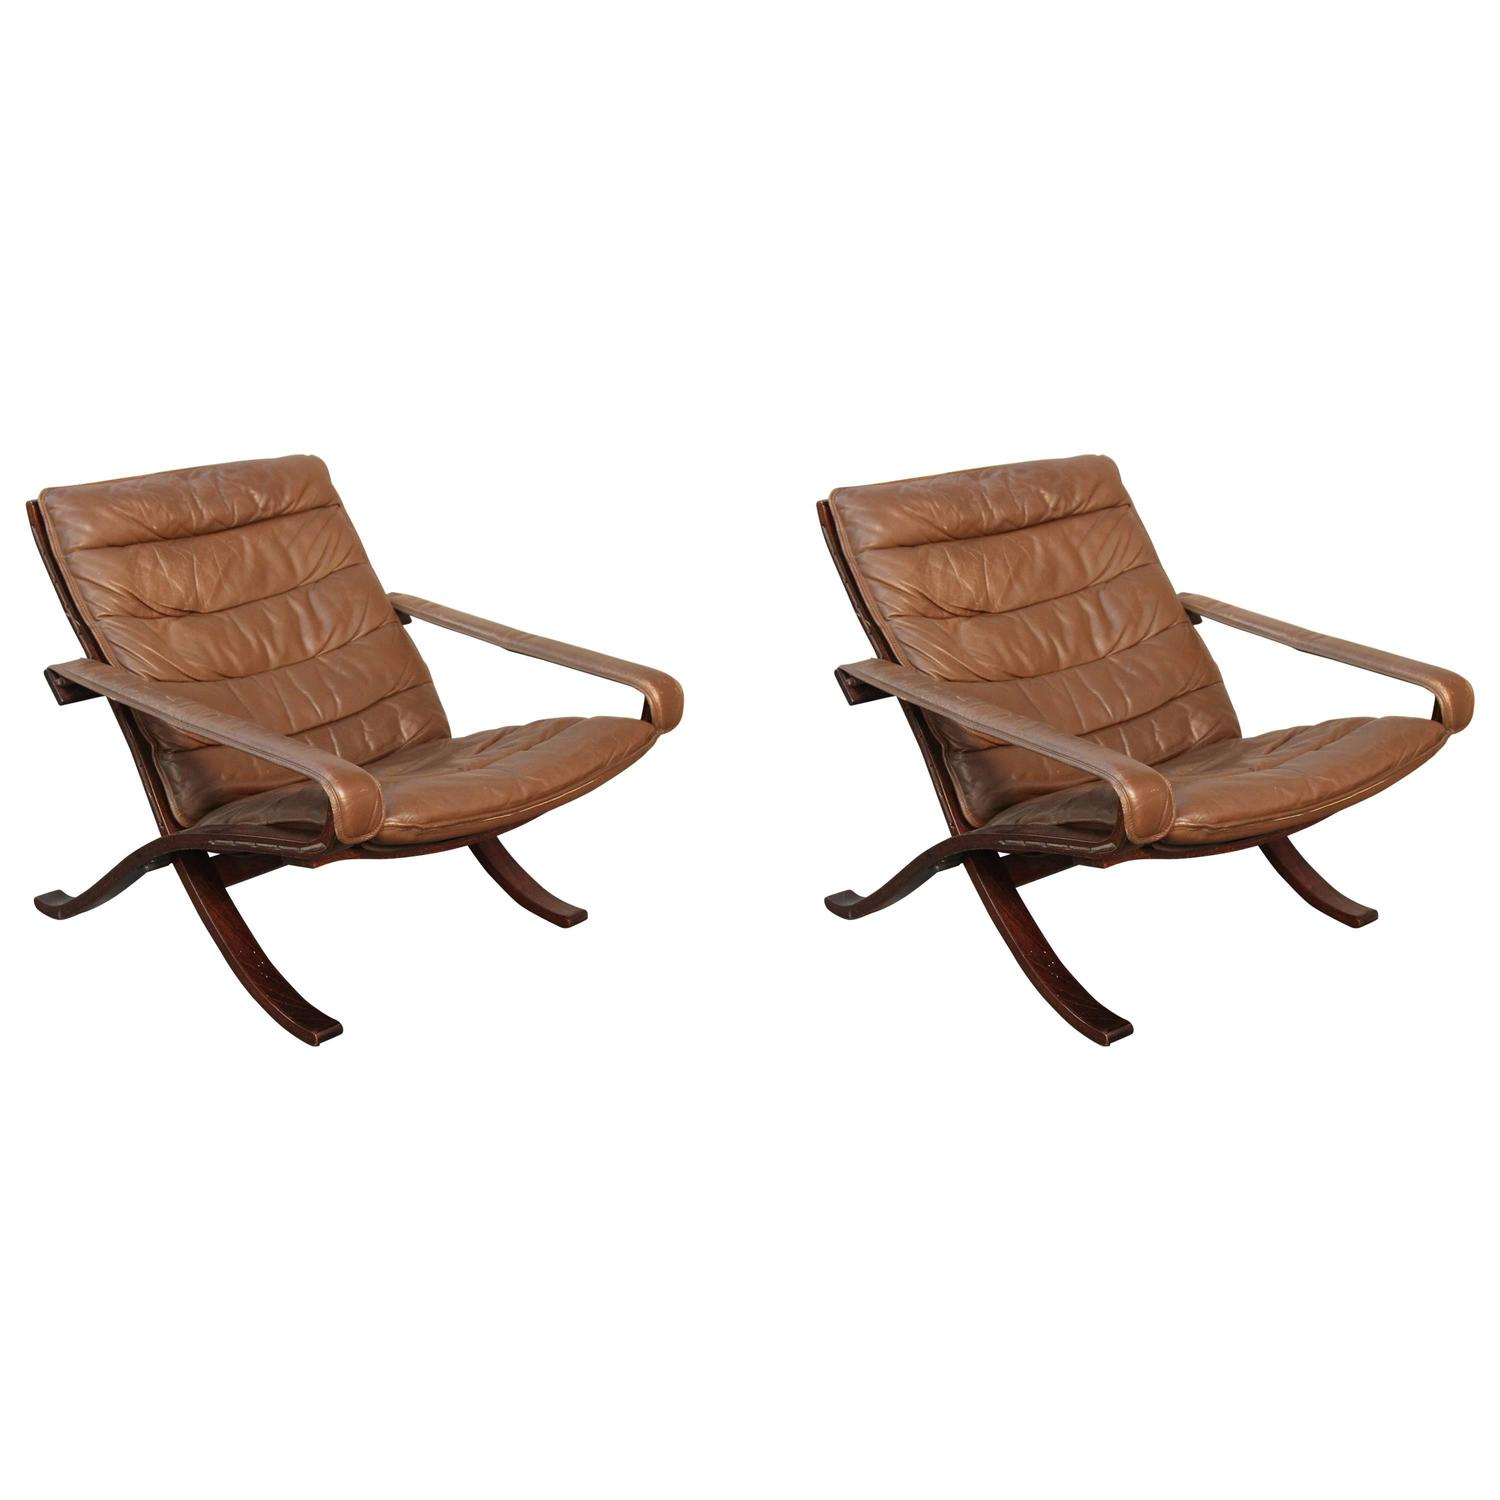 Safari Chair Ingmar Relling For Westnofa Flex Safari Chairs For Sale At